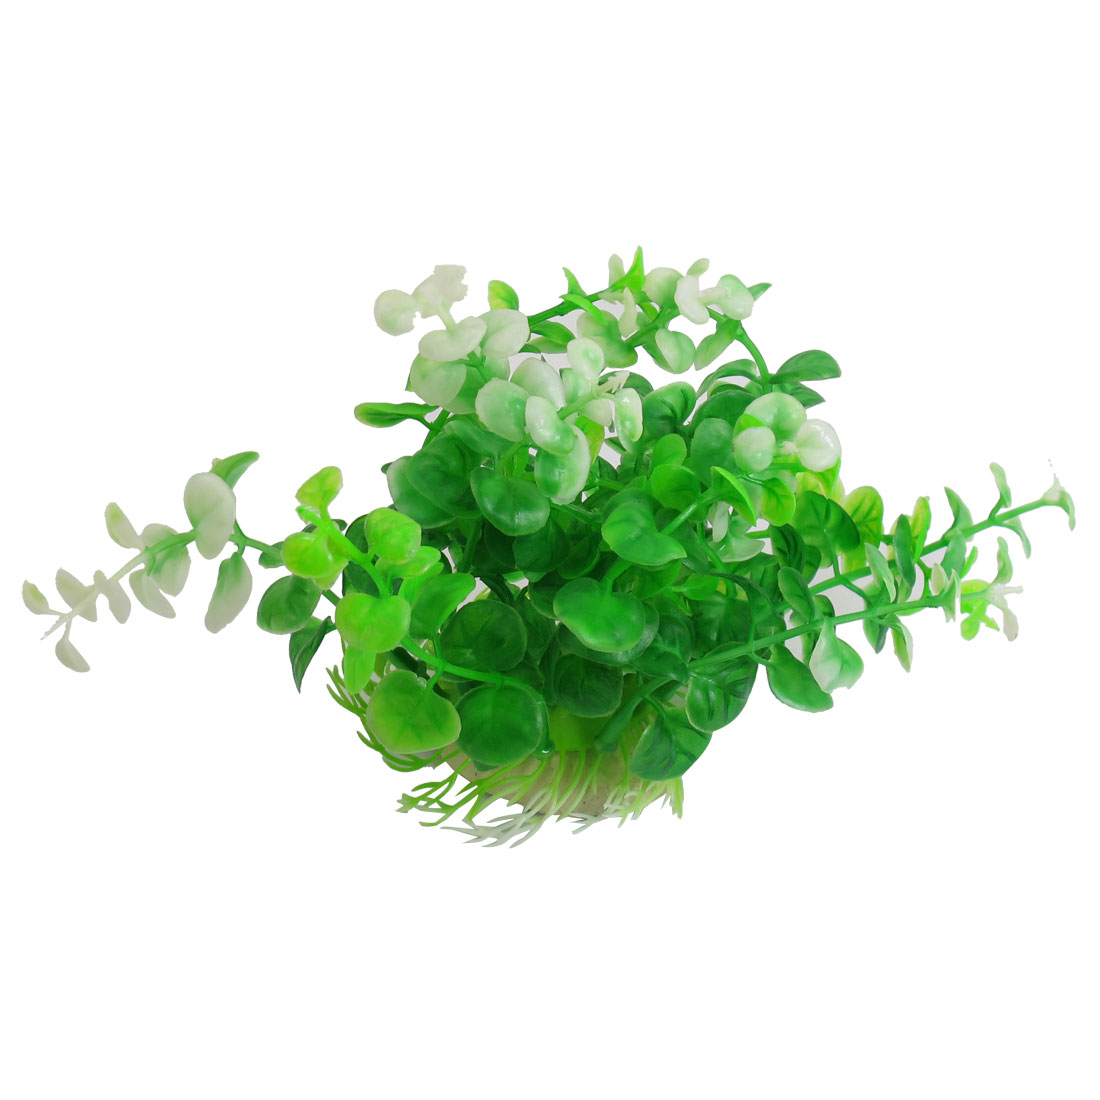 "Fish Tank Aquarium White Green Plastic Grass Plant Decor 4.3"" Height"